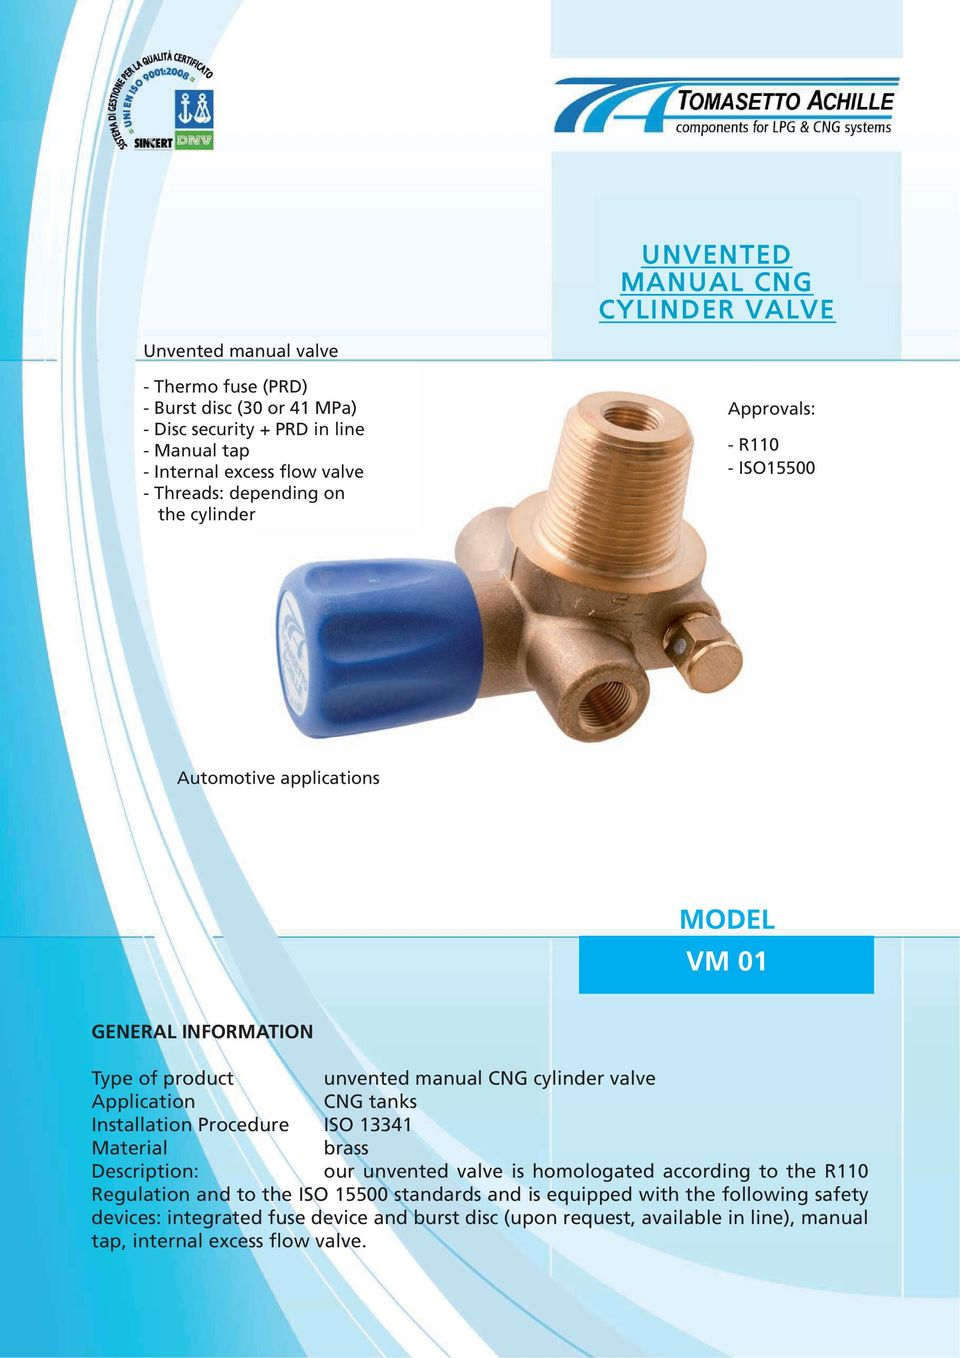 cylinder valve Application CNG tanks Installation Procedure ISO 13341 Material brass Description: our unvented valve is homologated according to the R110 Regulation and to the